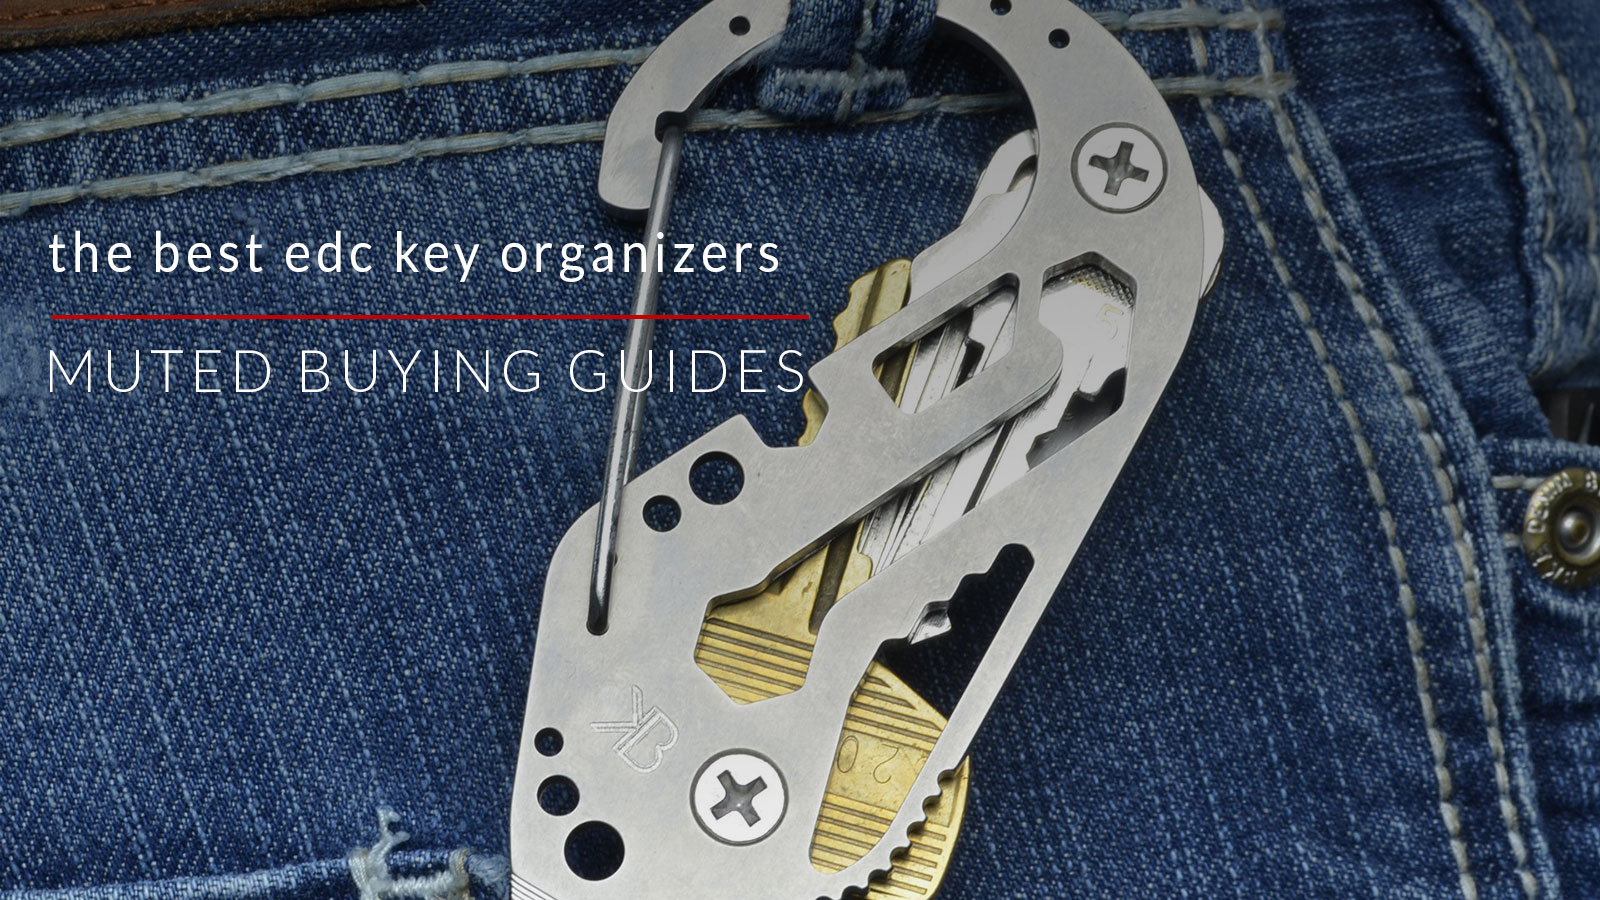 40 of The Best EDC Keychains To Organize Your Essentials